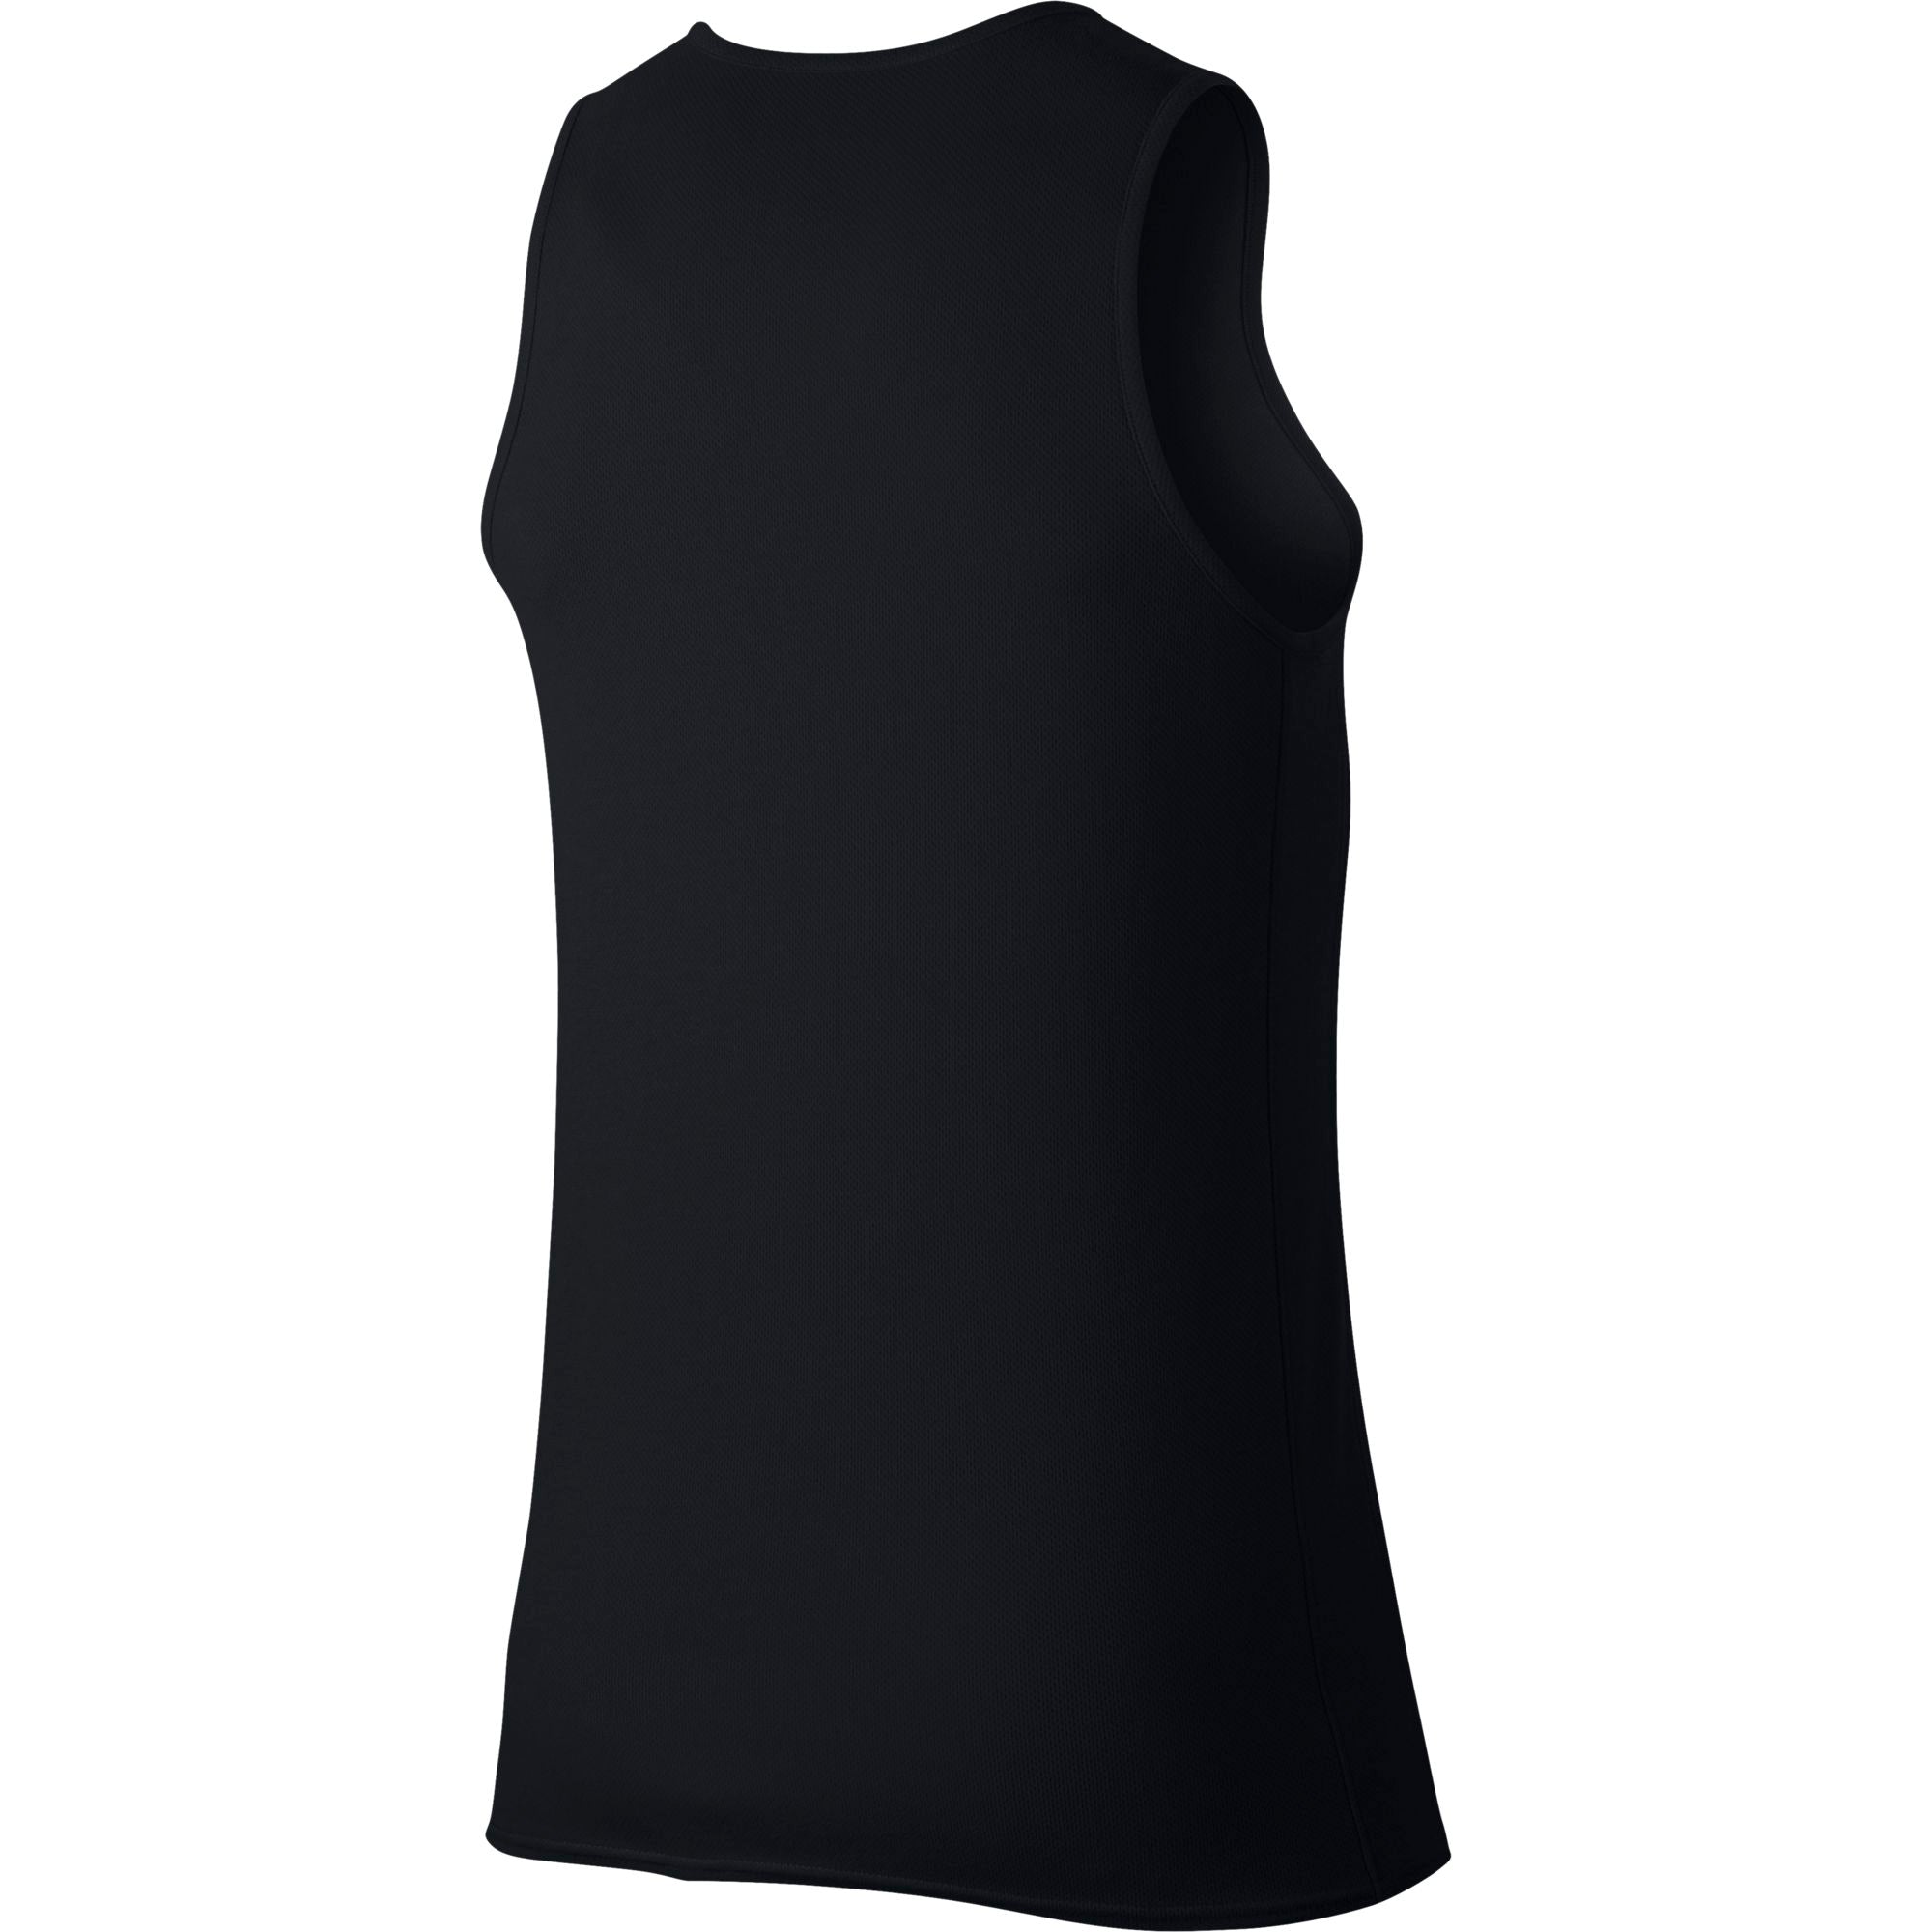 Nike Jordan Basketball Rise Tank - Black/White